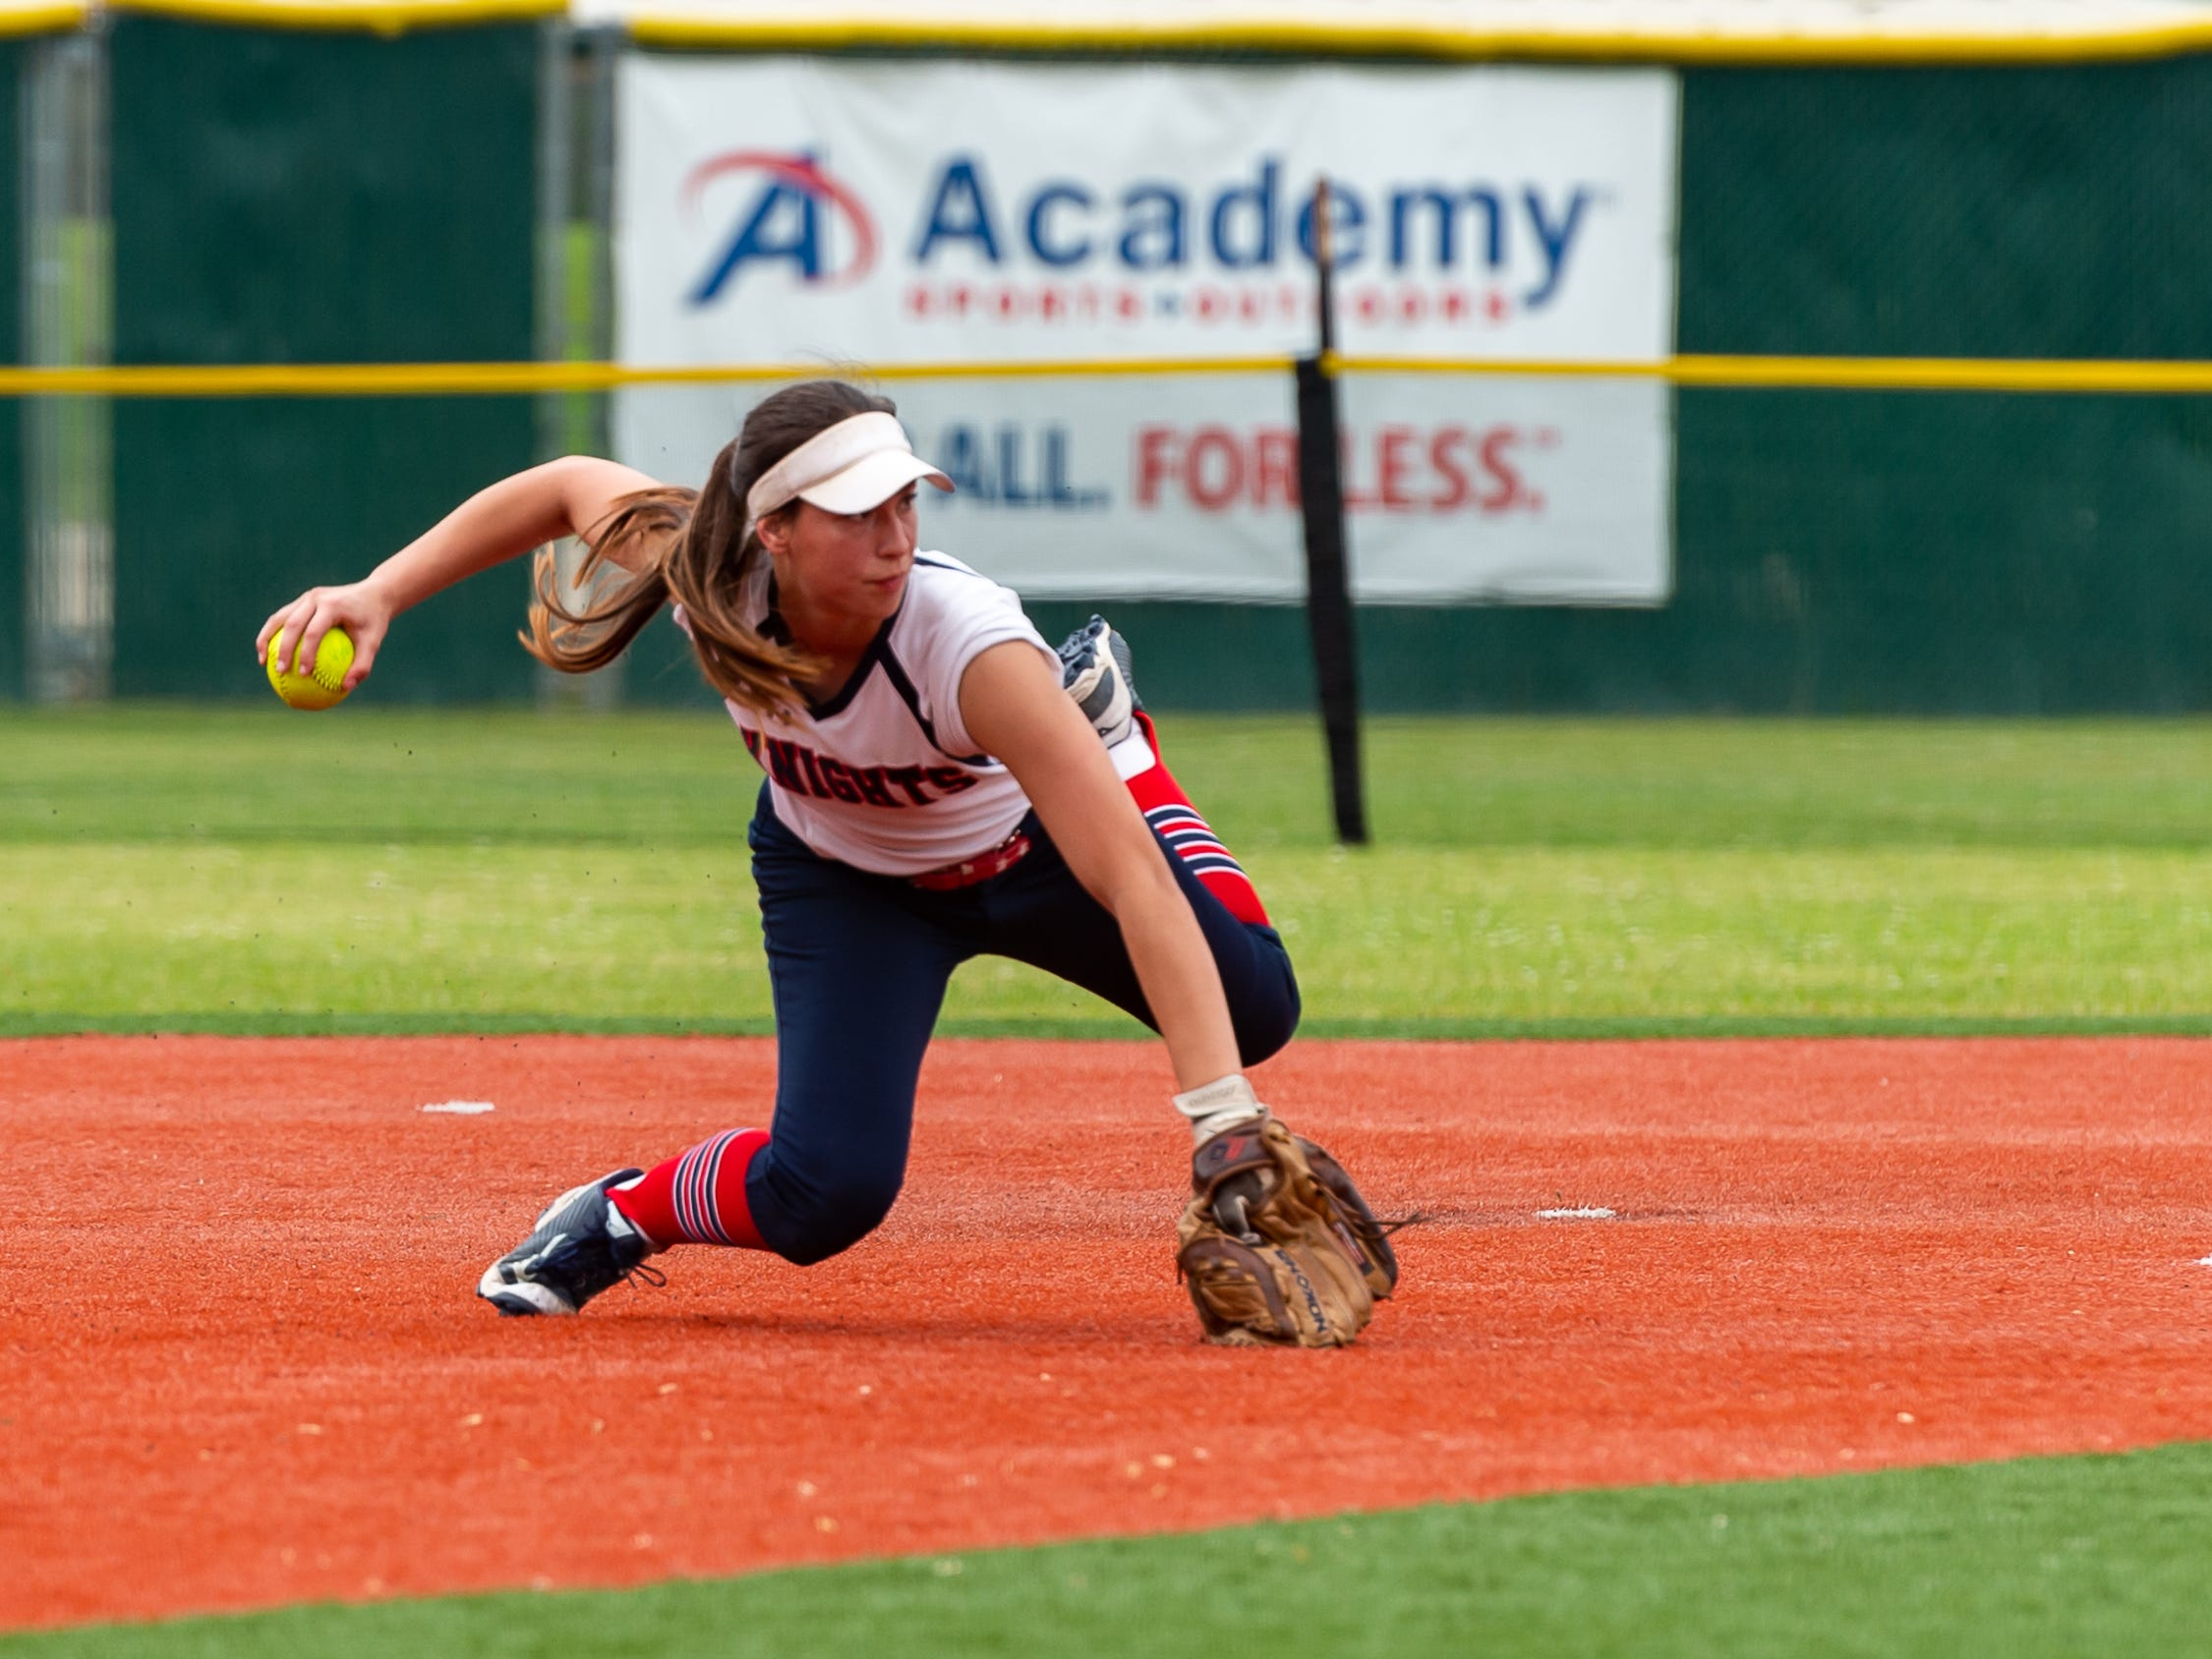 Shortstop Sarah Diaz comes up with the ball and fires down to first as  Lafayette Christian Academy softball takes on University Academy in the forst round of the LHSAA playoffs. Friday, April 12, 2019.